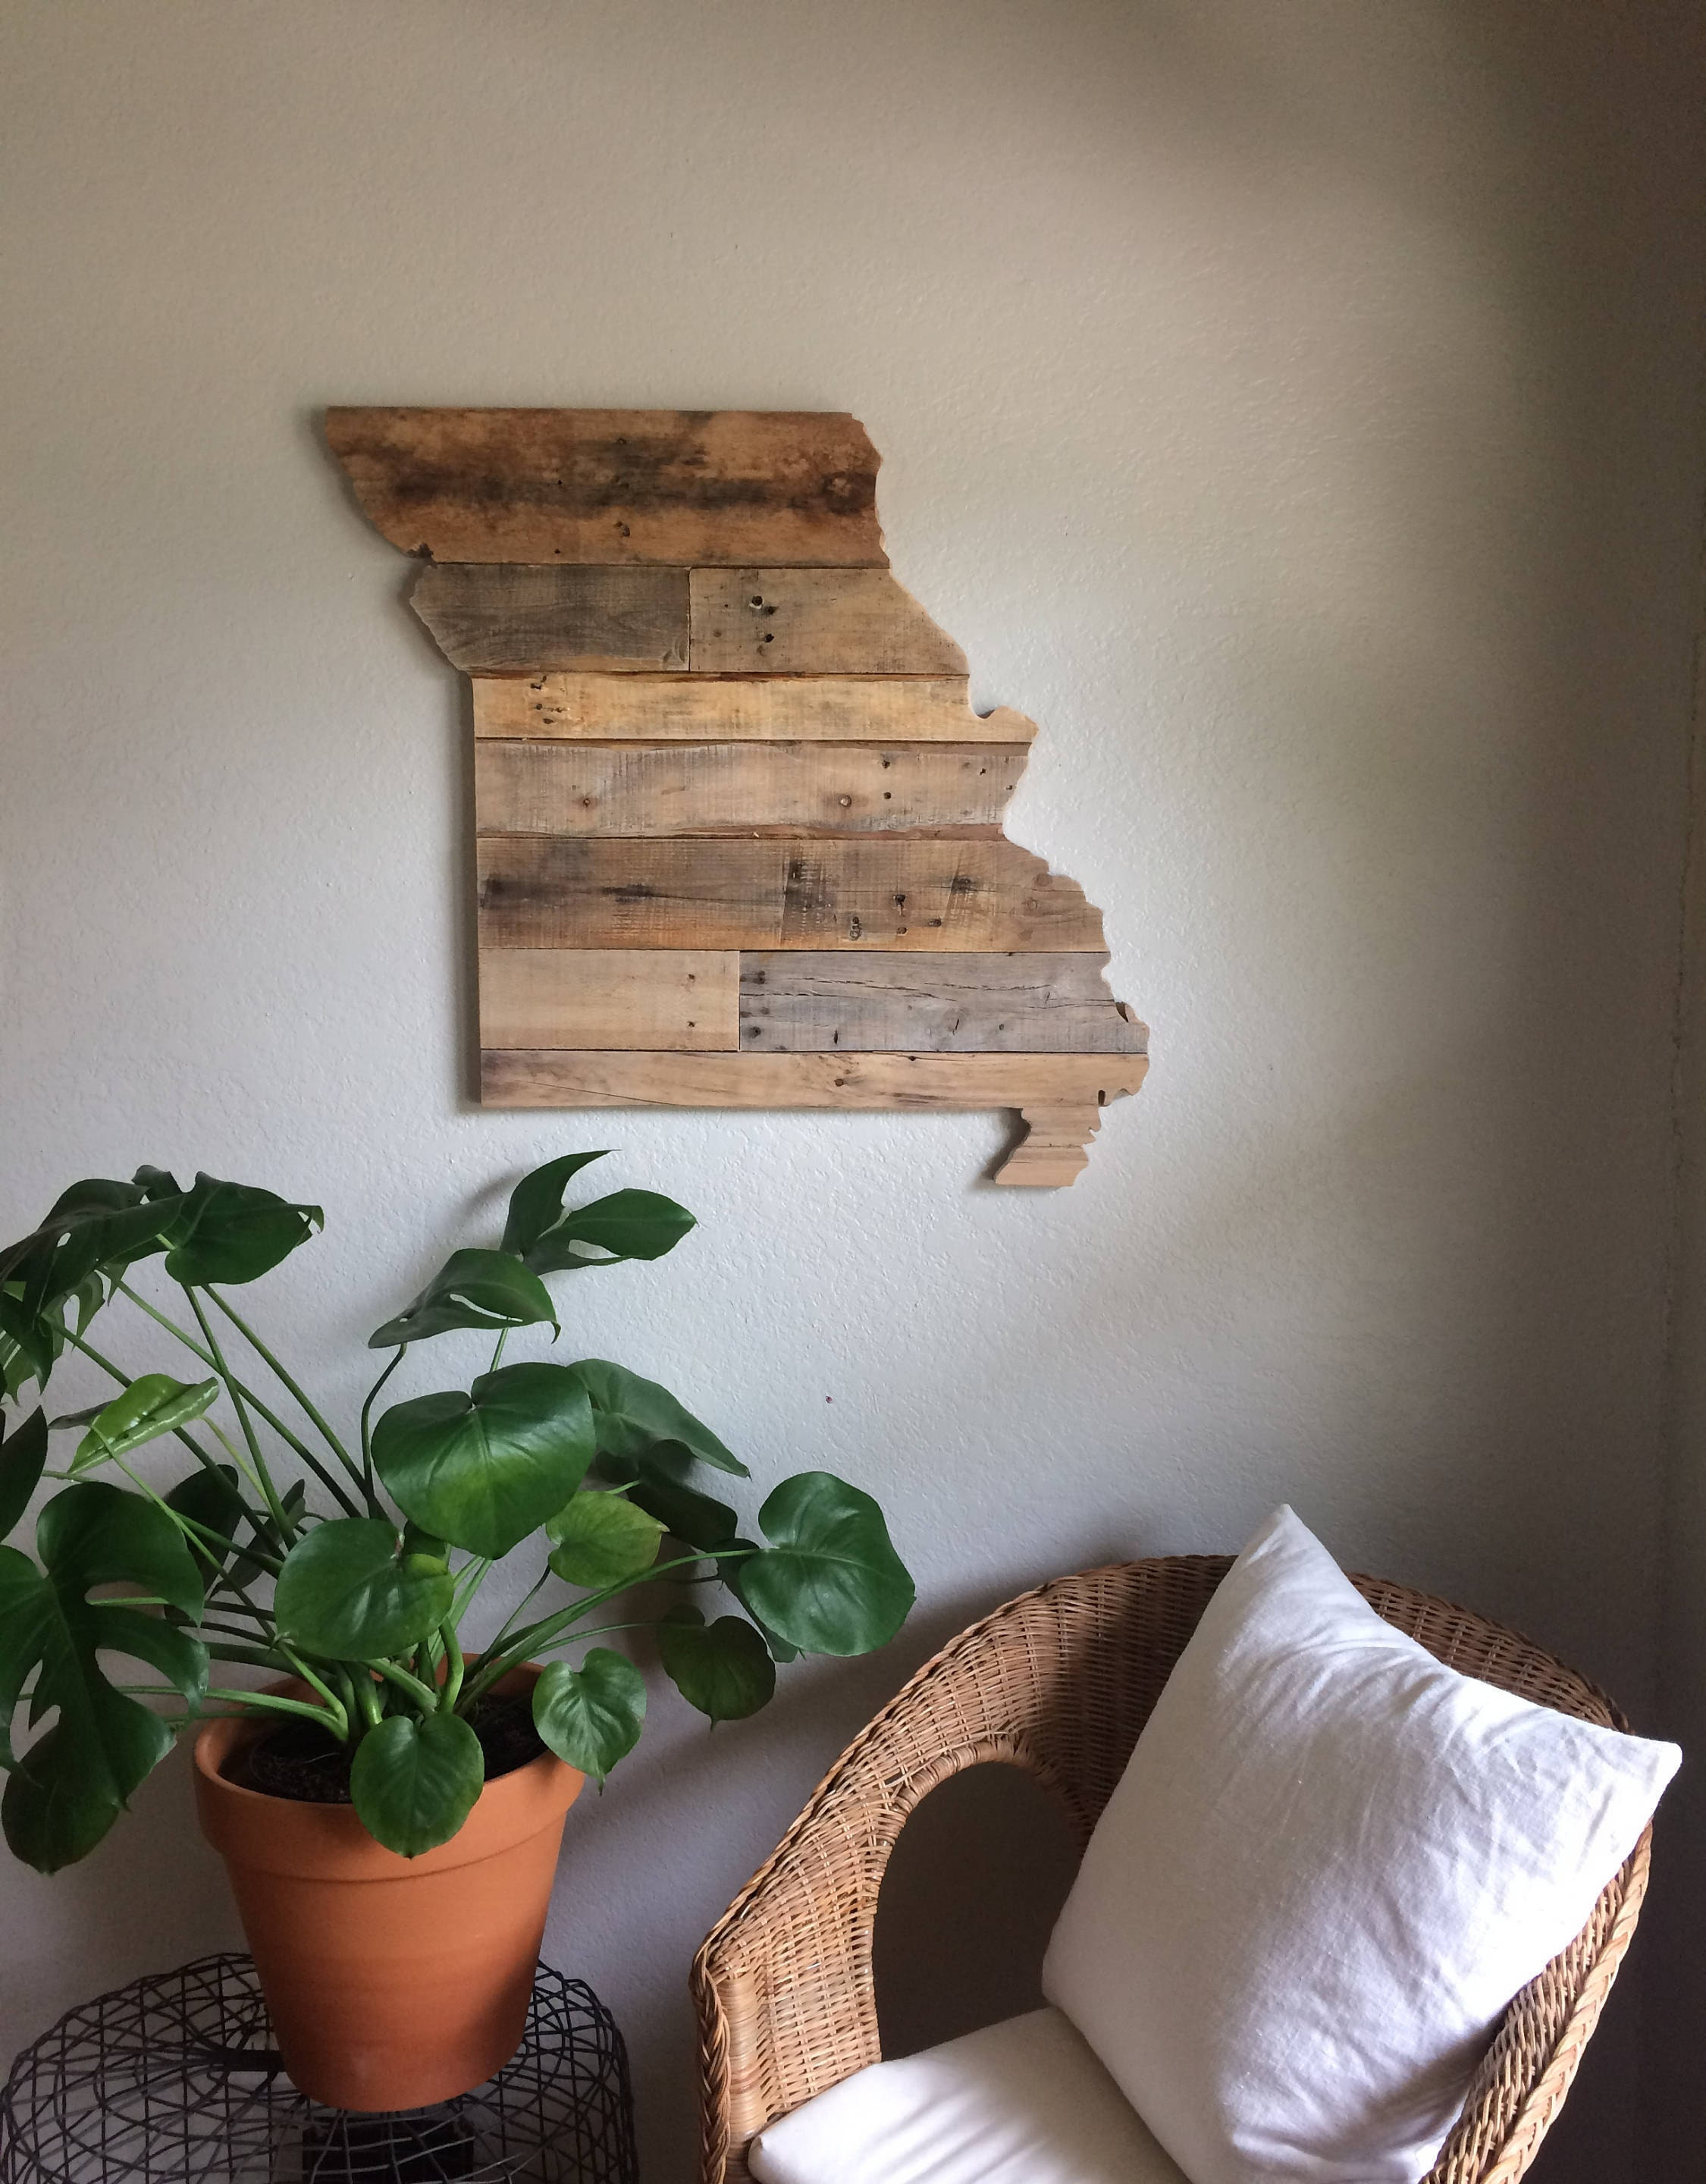 missouri state sign reclaimed wood pallet sign home decor wall art rustic decor barn wood st louis kansas city show me - Home Decor St Louis Mo